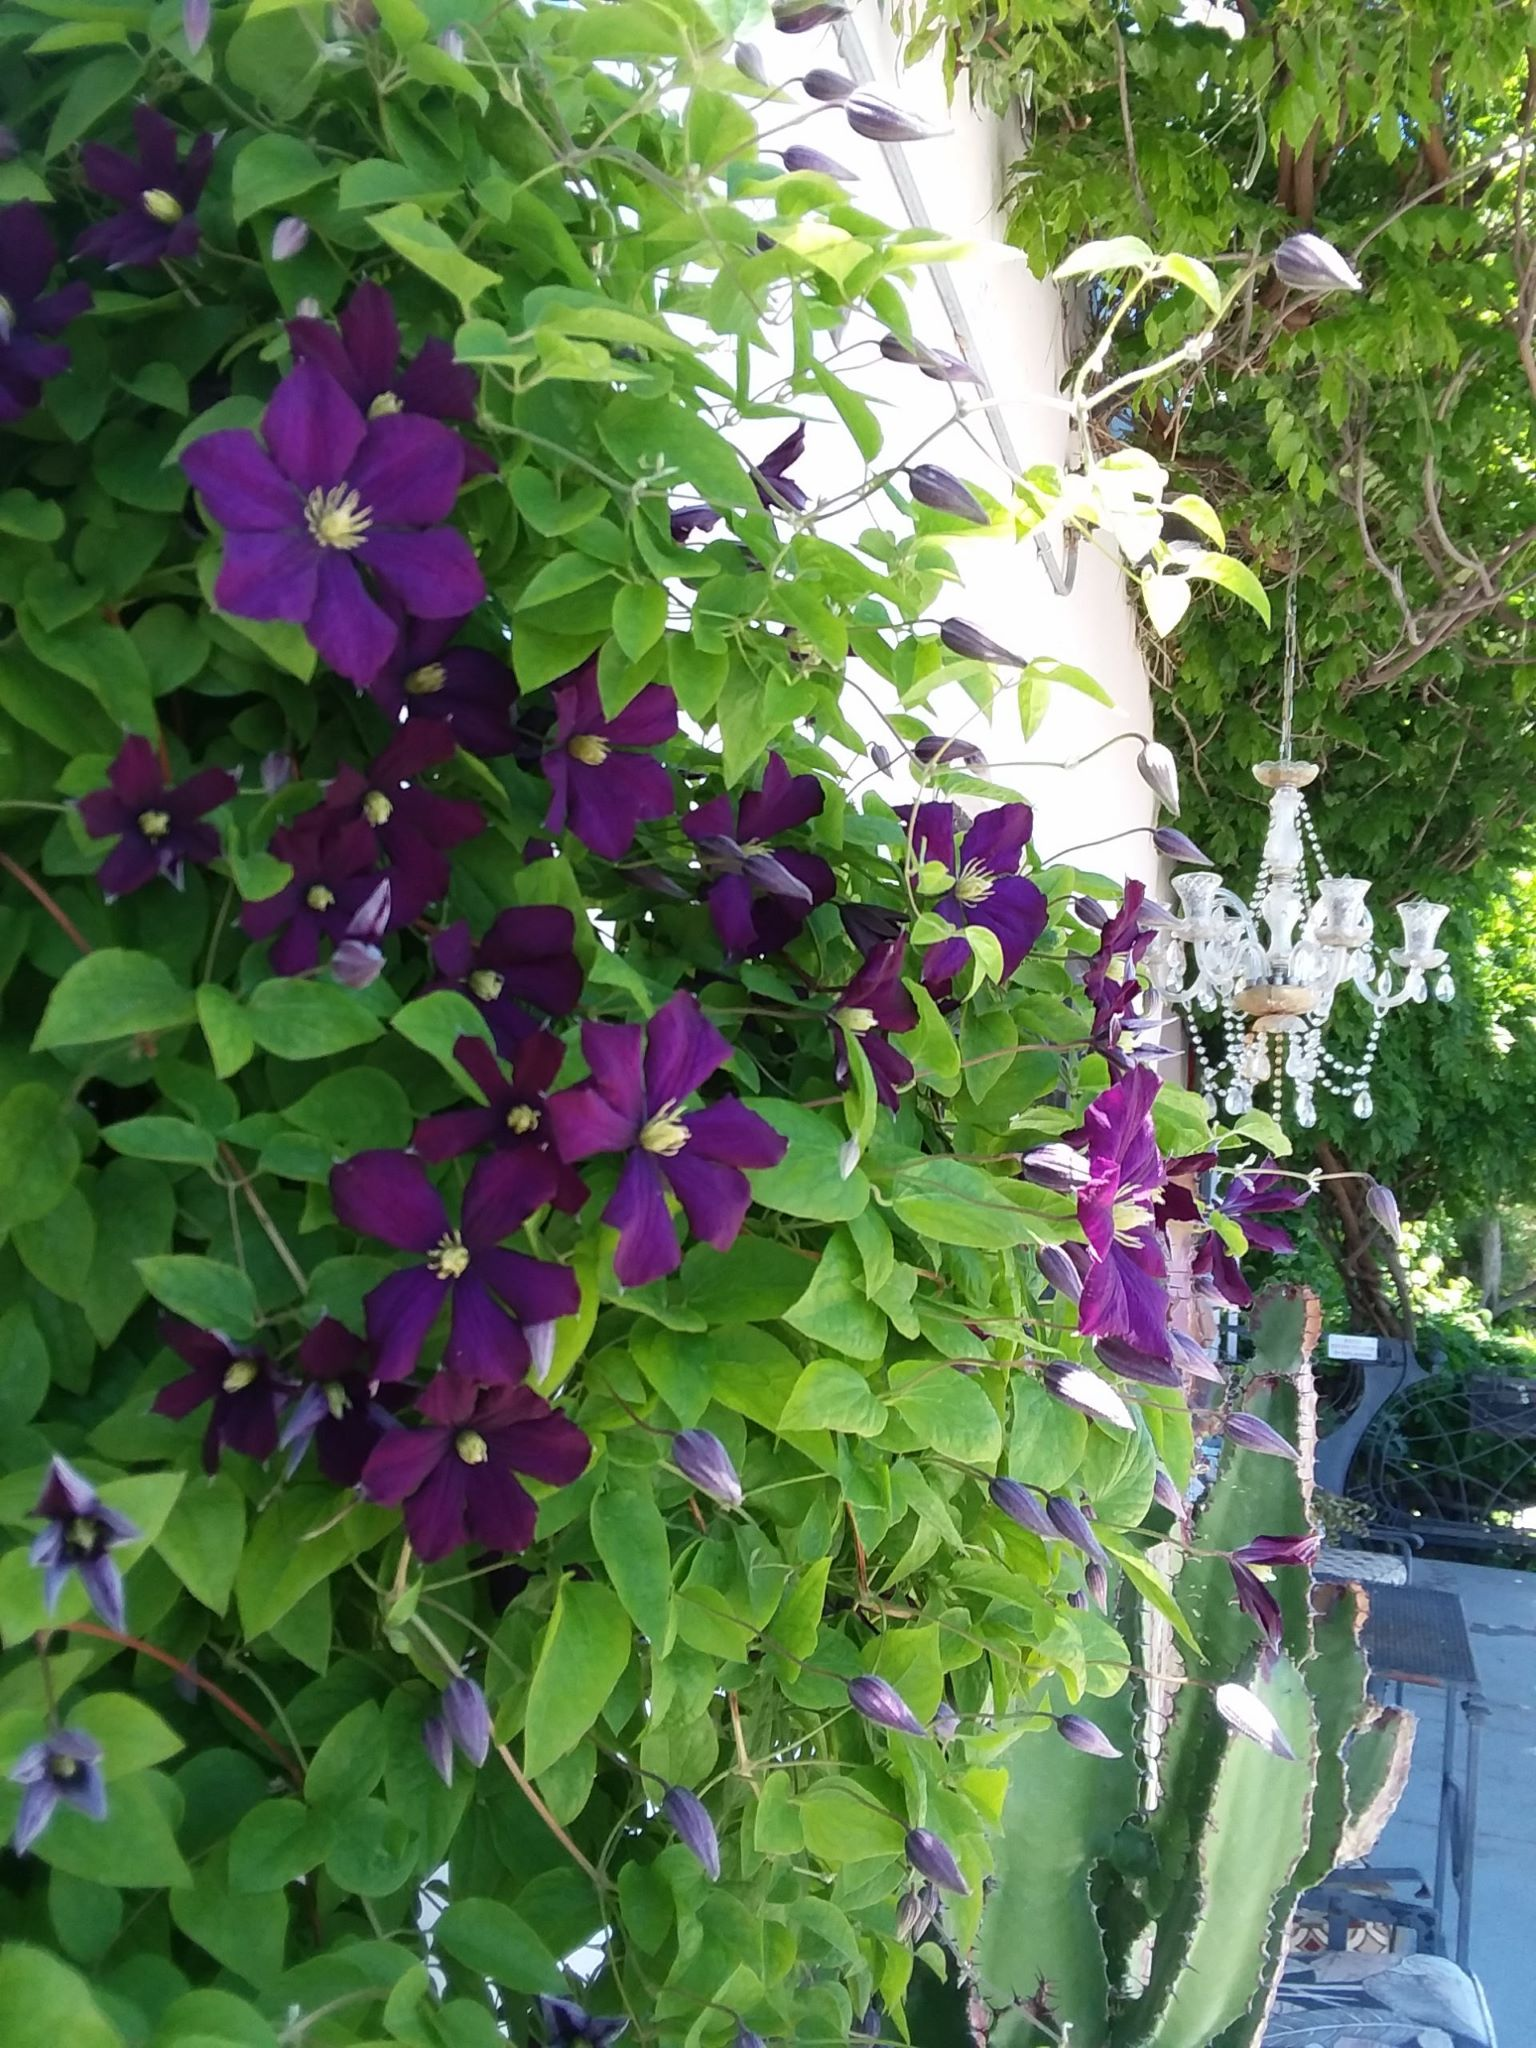 Clematis and chandalier